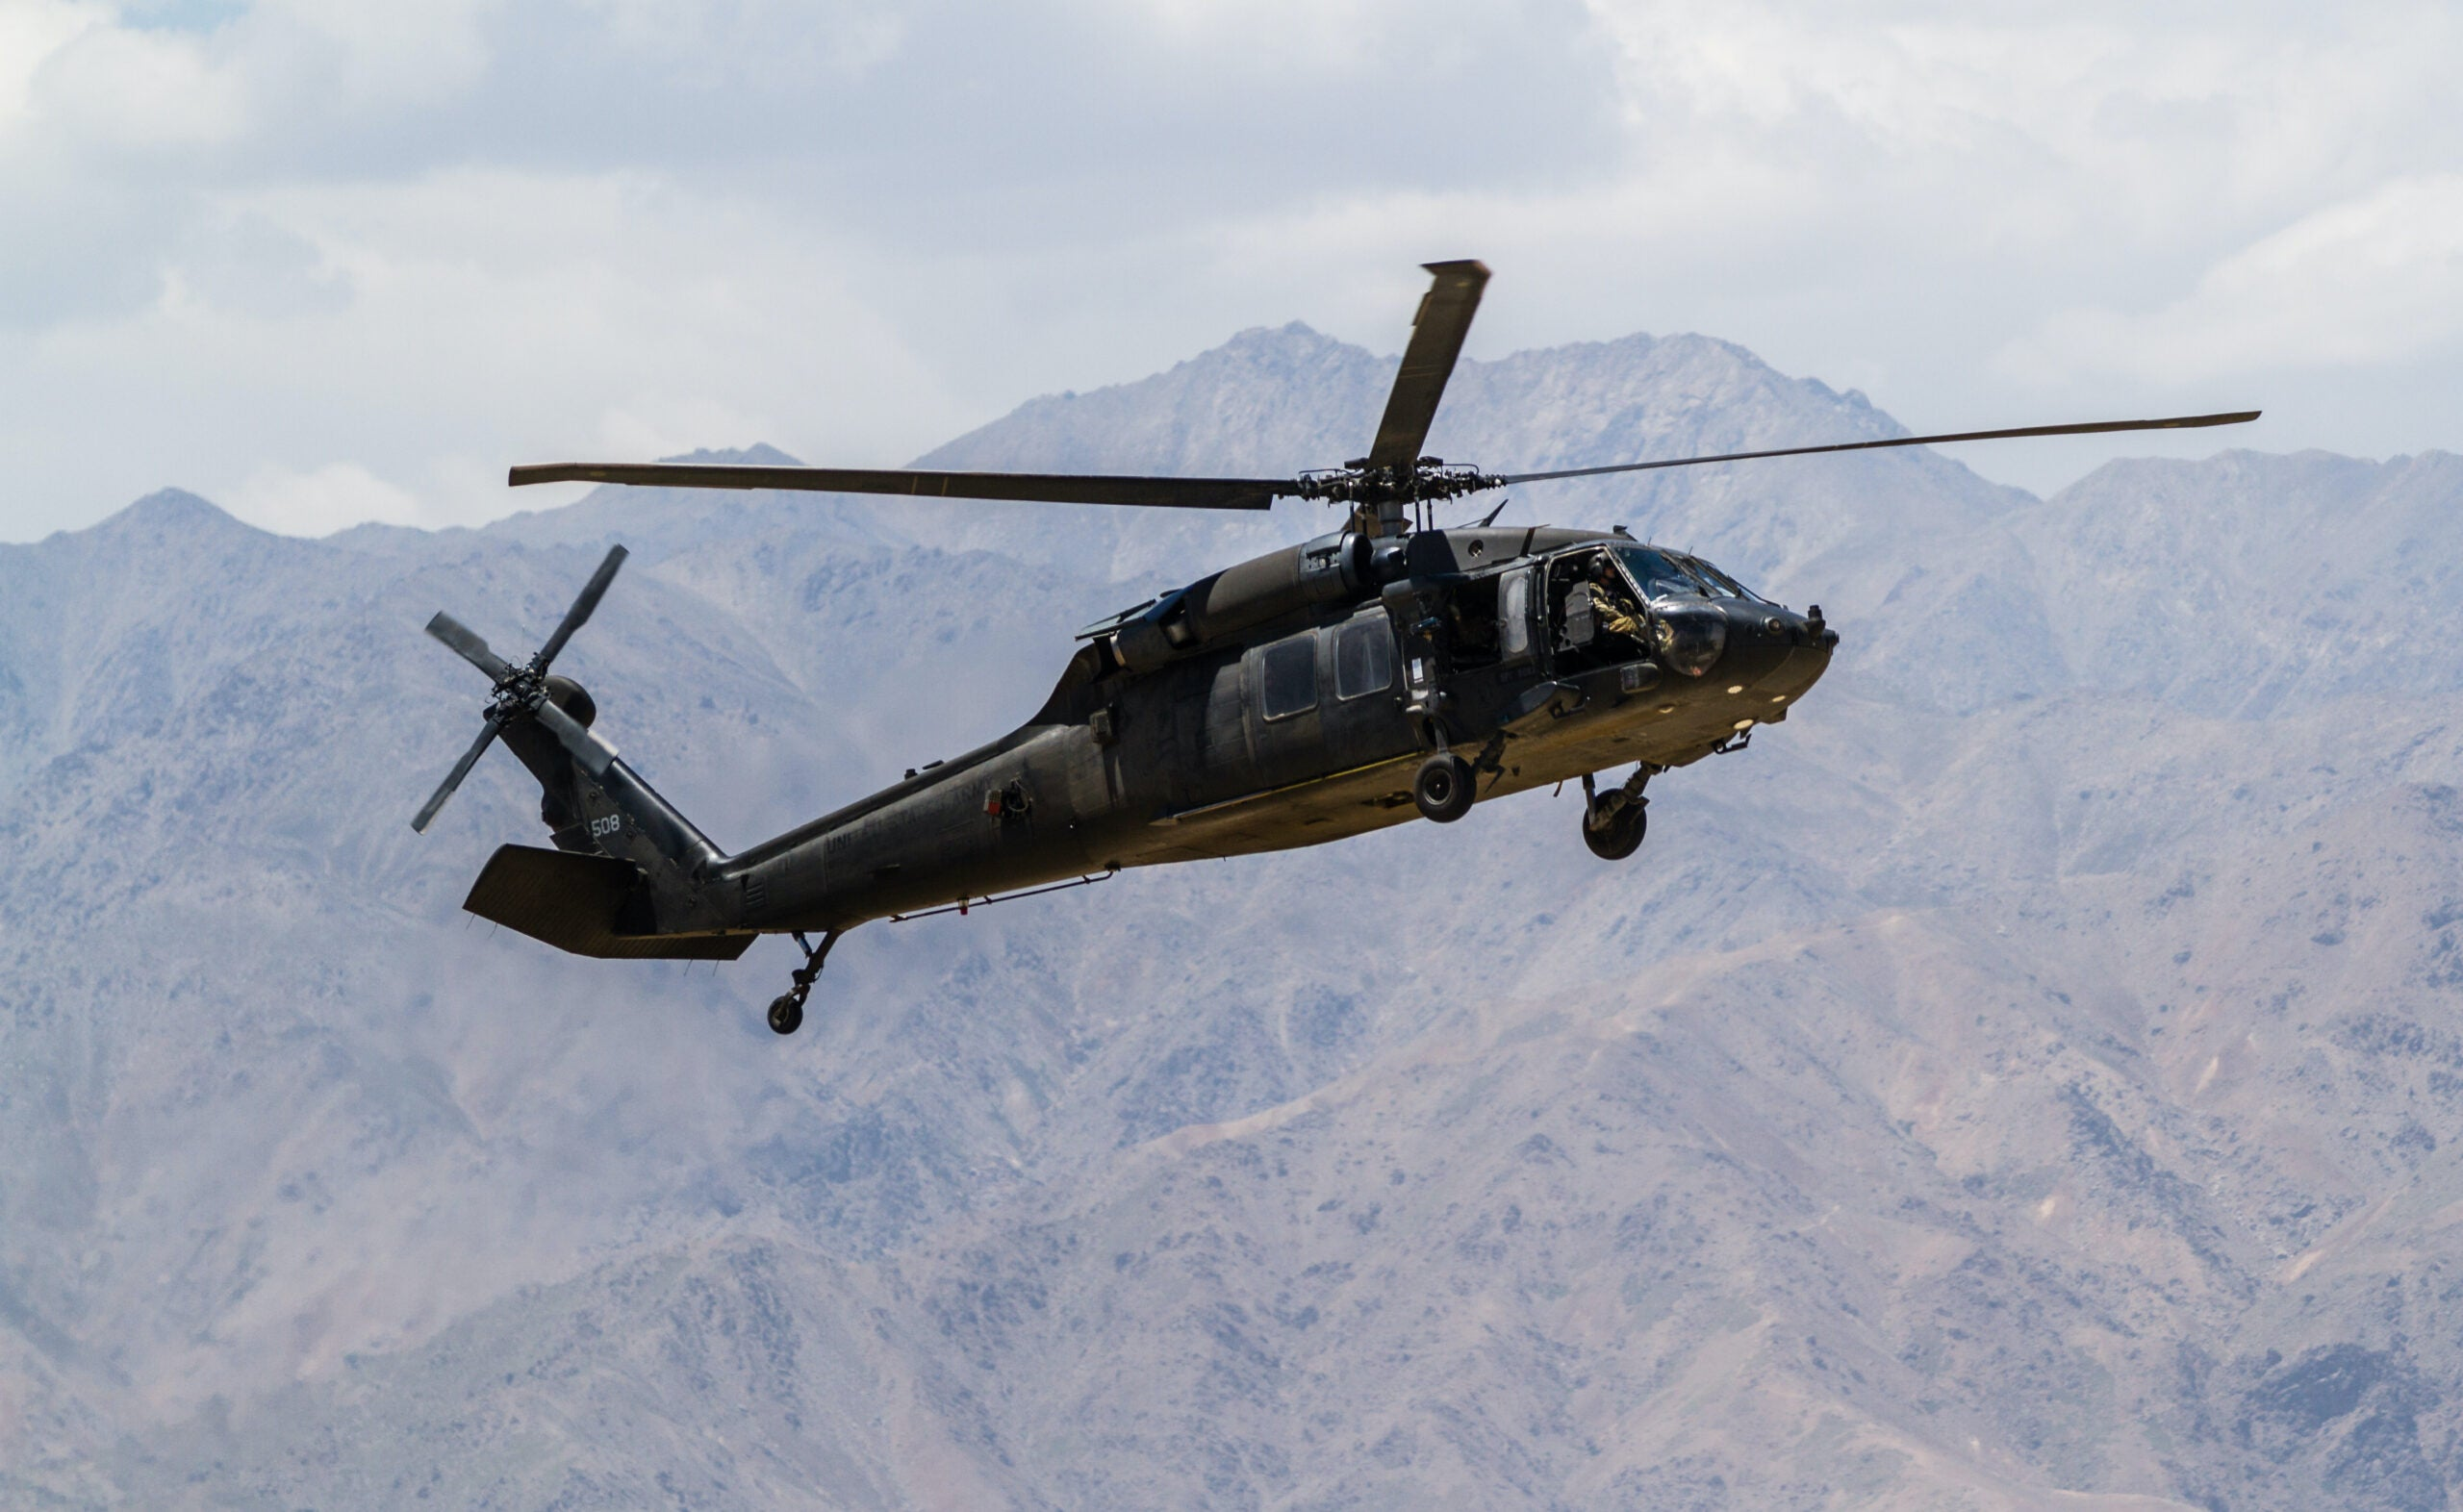 Taliban fighters are reportedly using anti-tank missiles to down Afghan helicopters